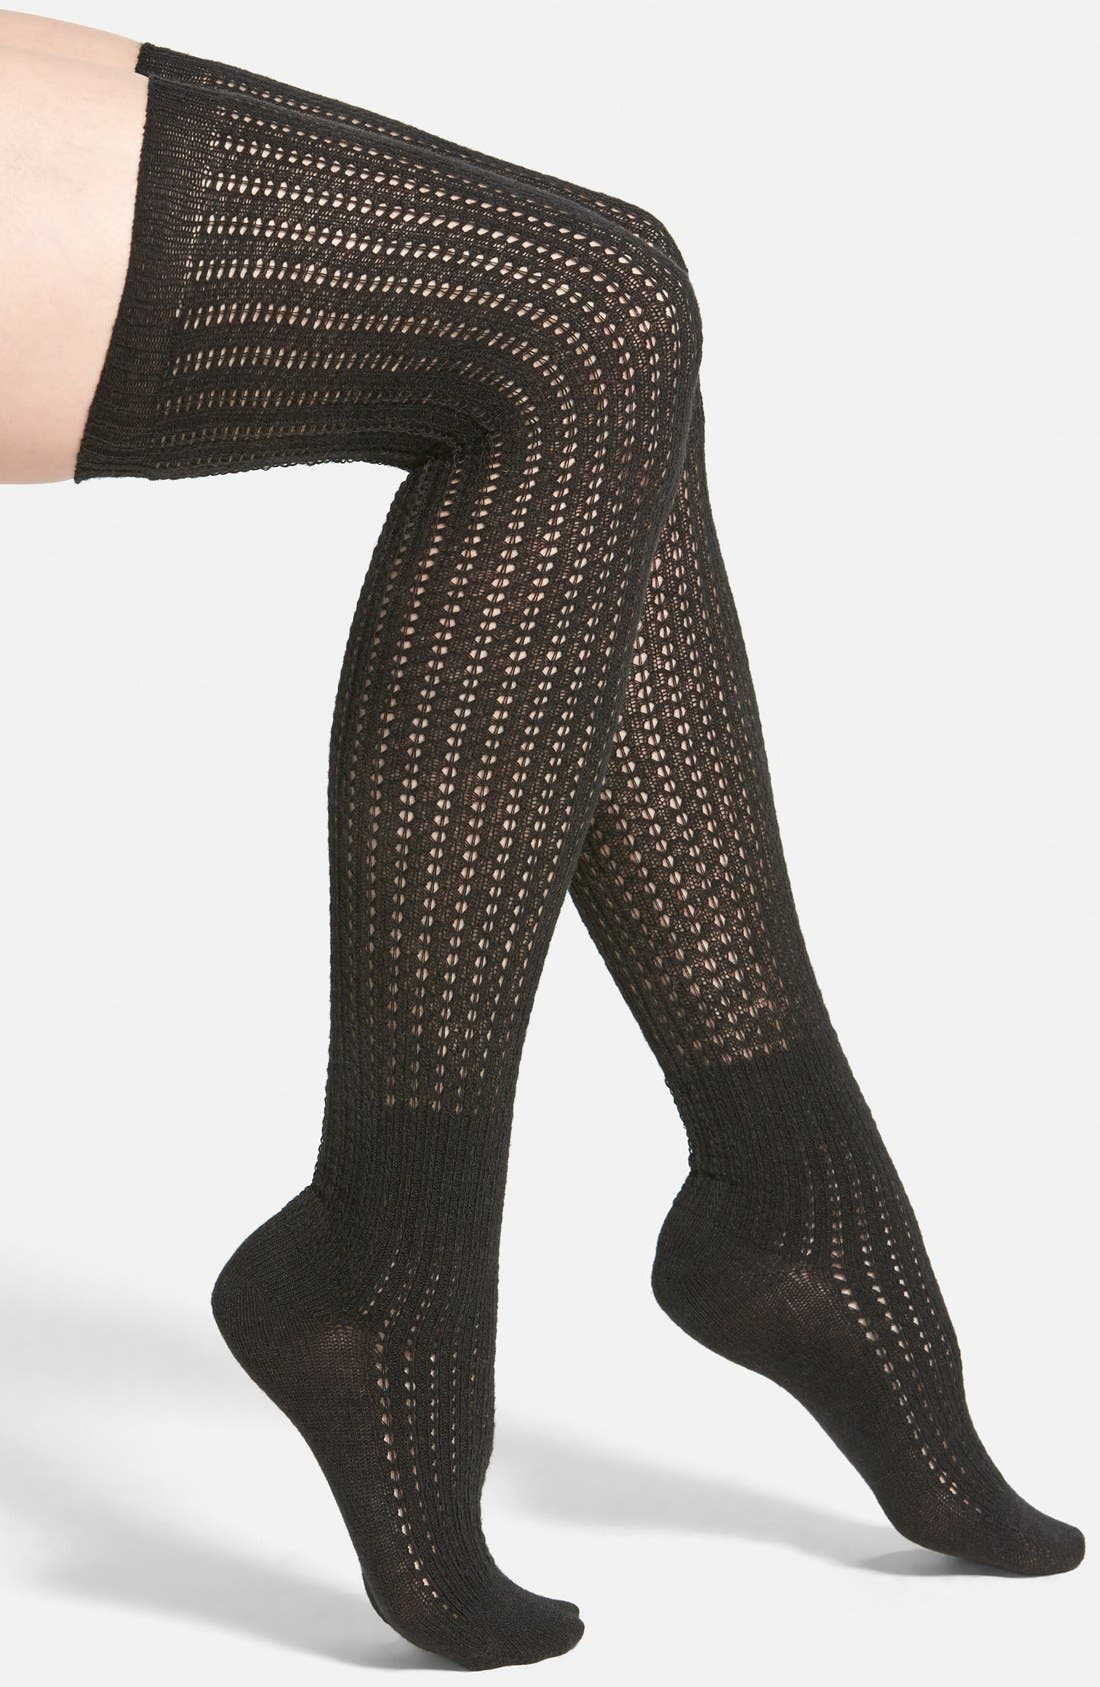 Alternate Image 1 Selected - Vince Camuto Lightweight Over the Knee Socks (Online Only)